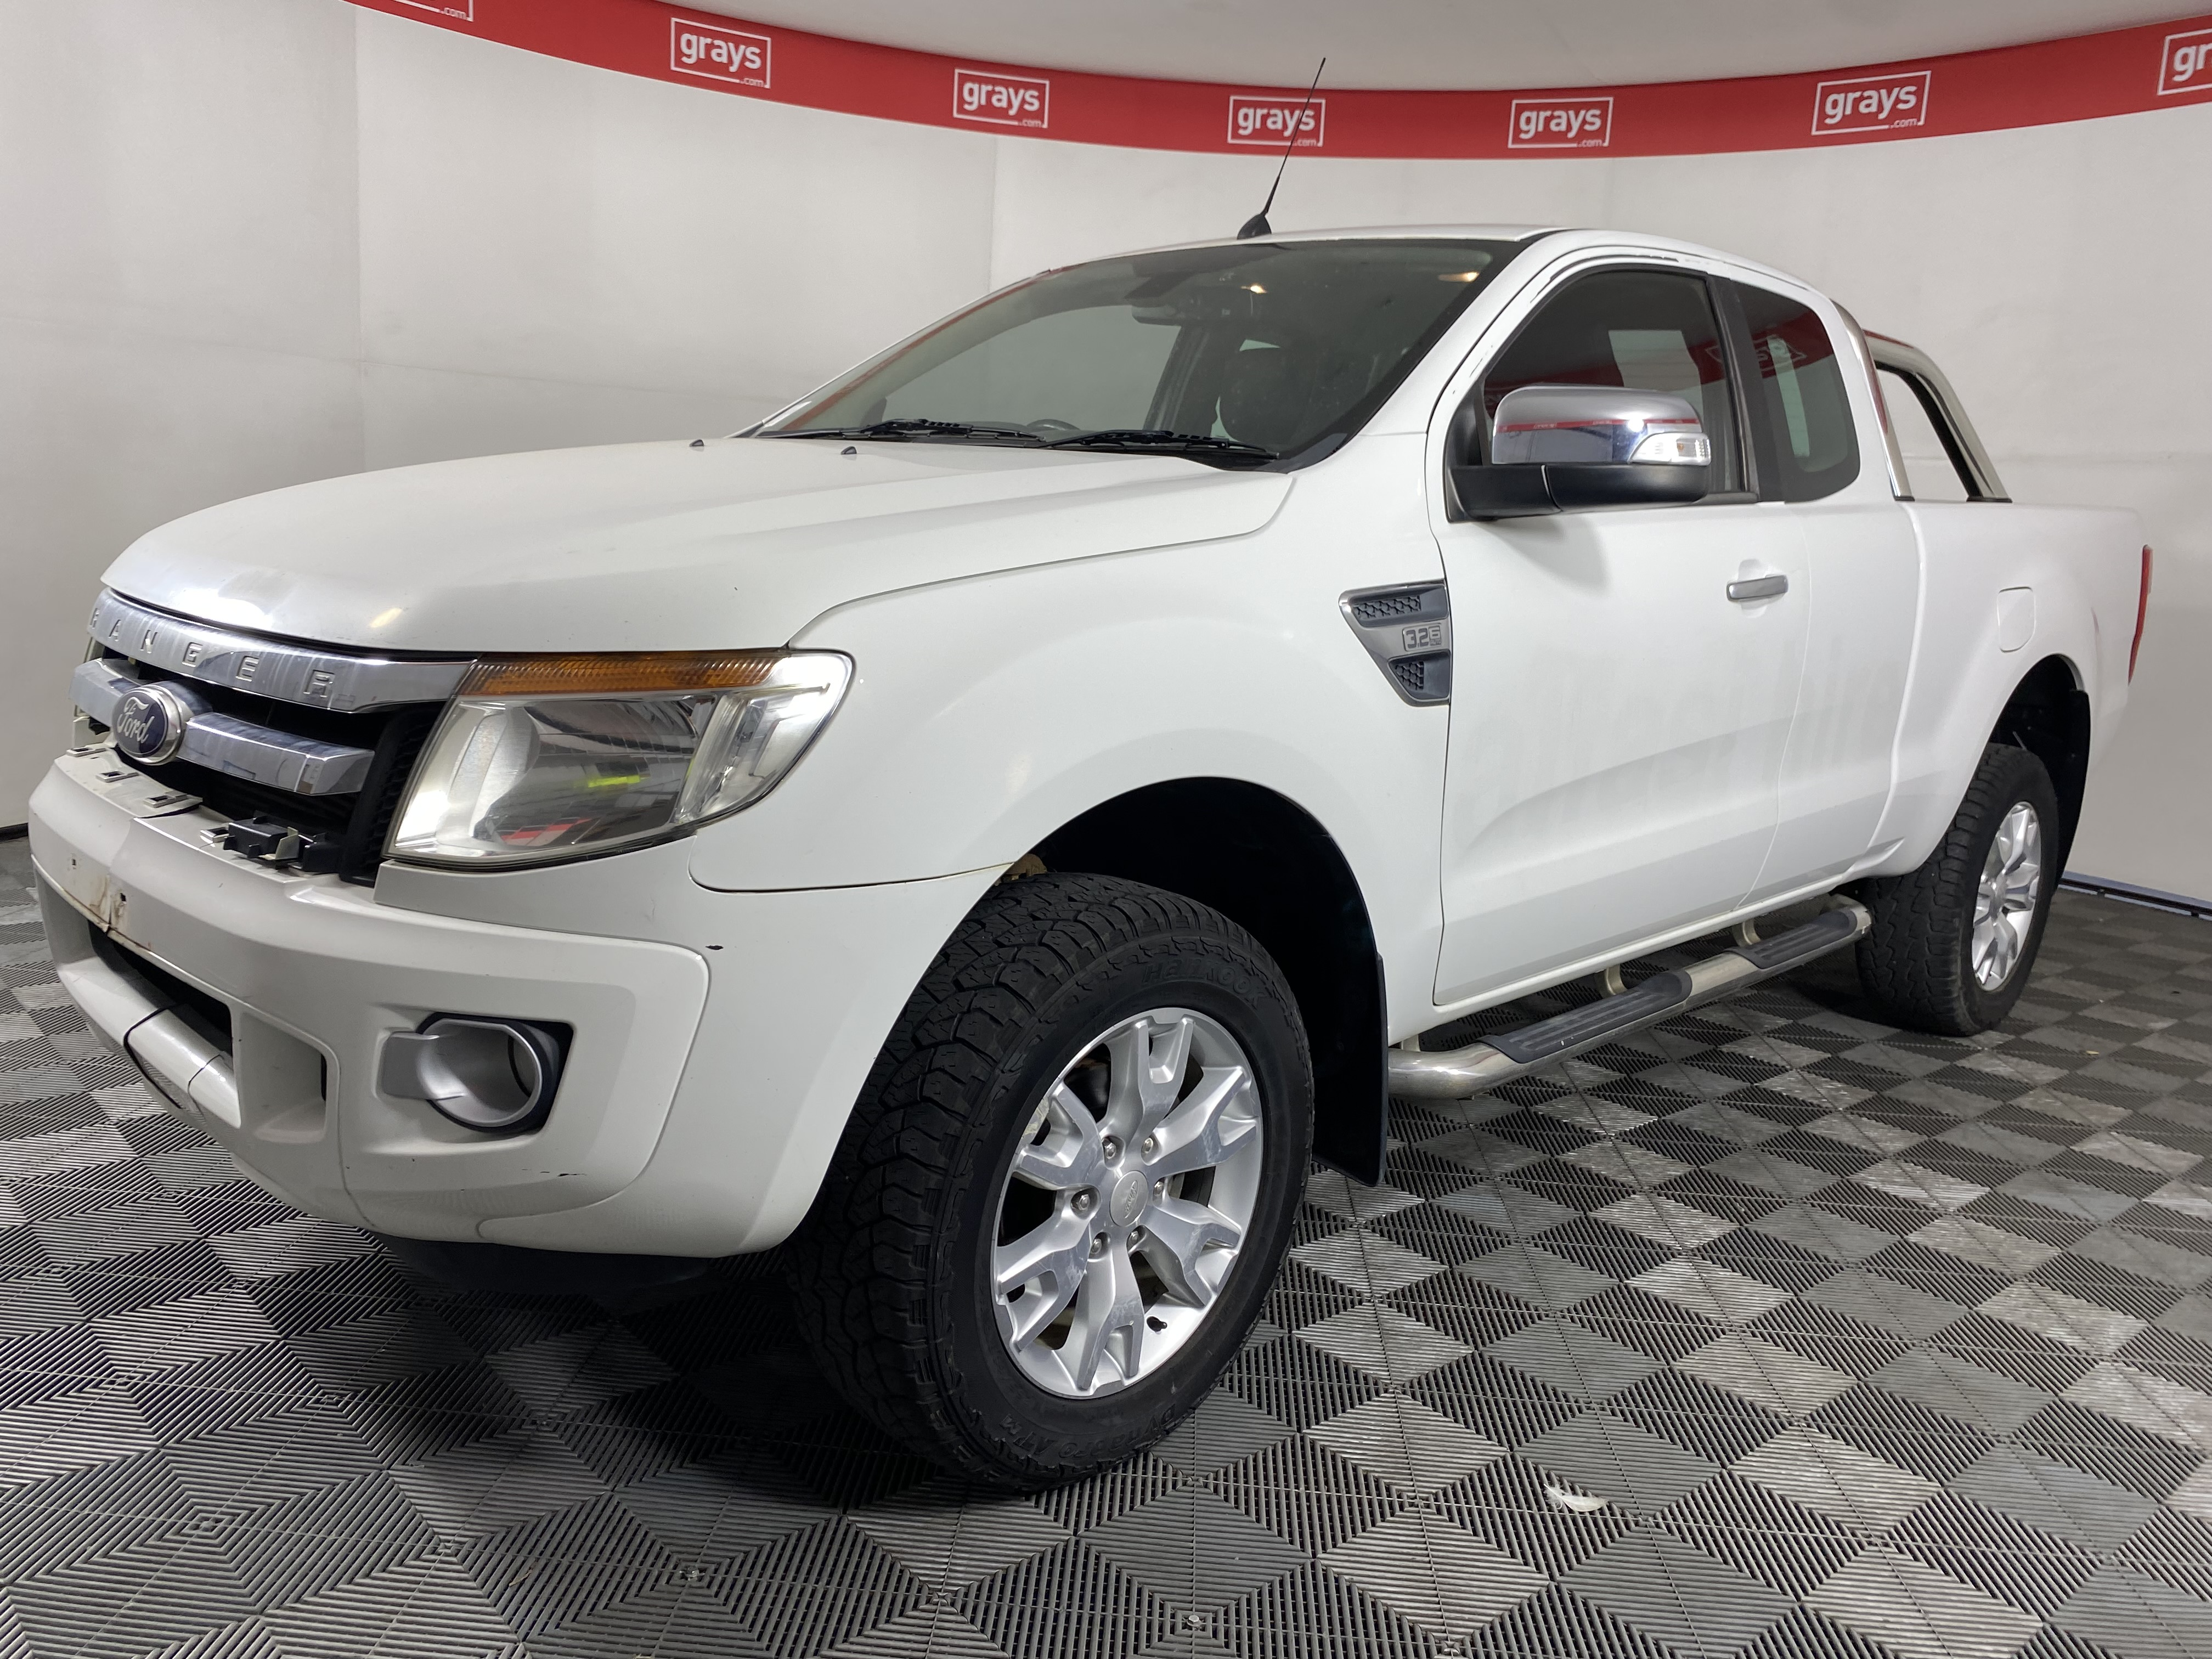 2013 Ford Ranger XLT 4X4 PX Turbo Diesel Automatic Ute